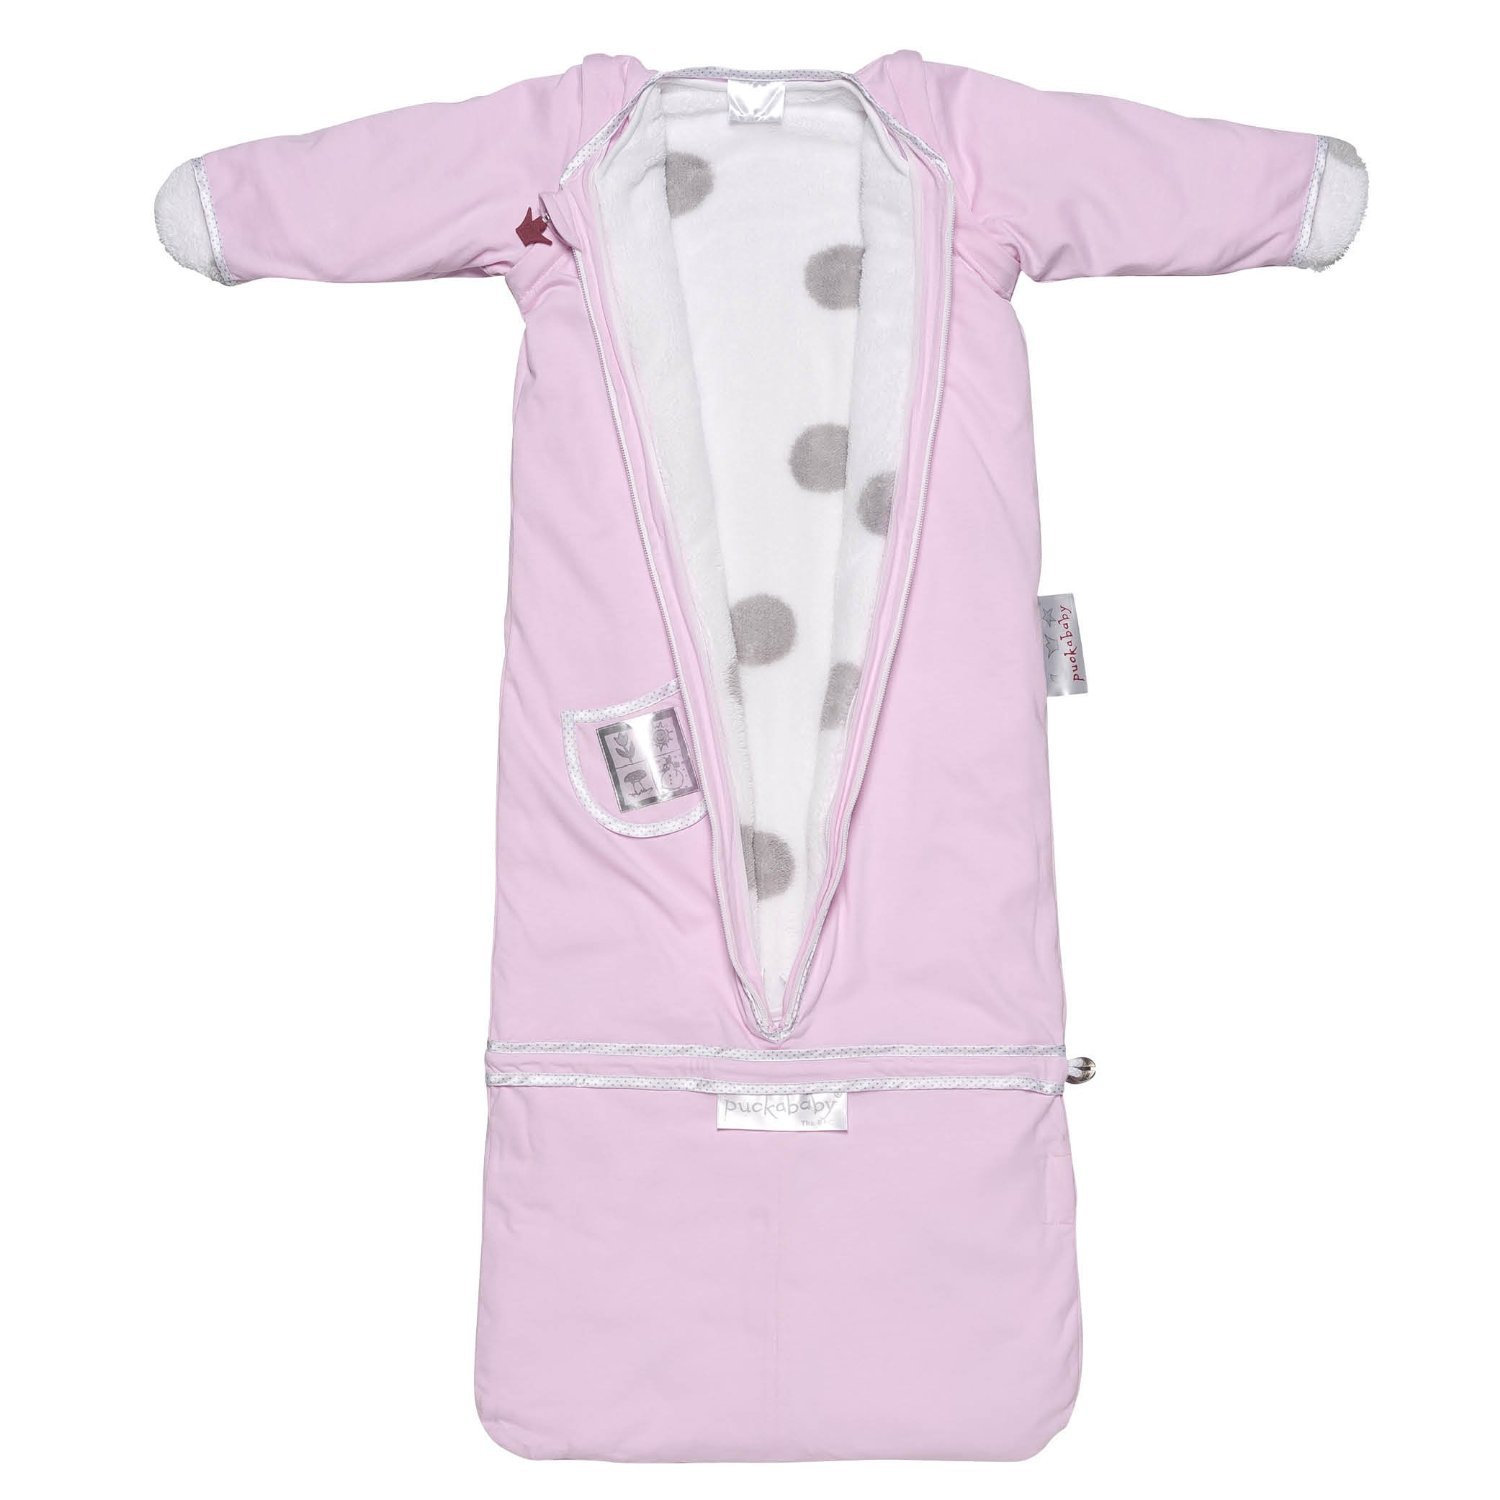 Puckababy The Bag 4 Seasons Baby And Toddler Wearable Blanket, Pink 7 M - 2.5 Yr.